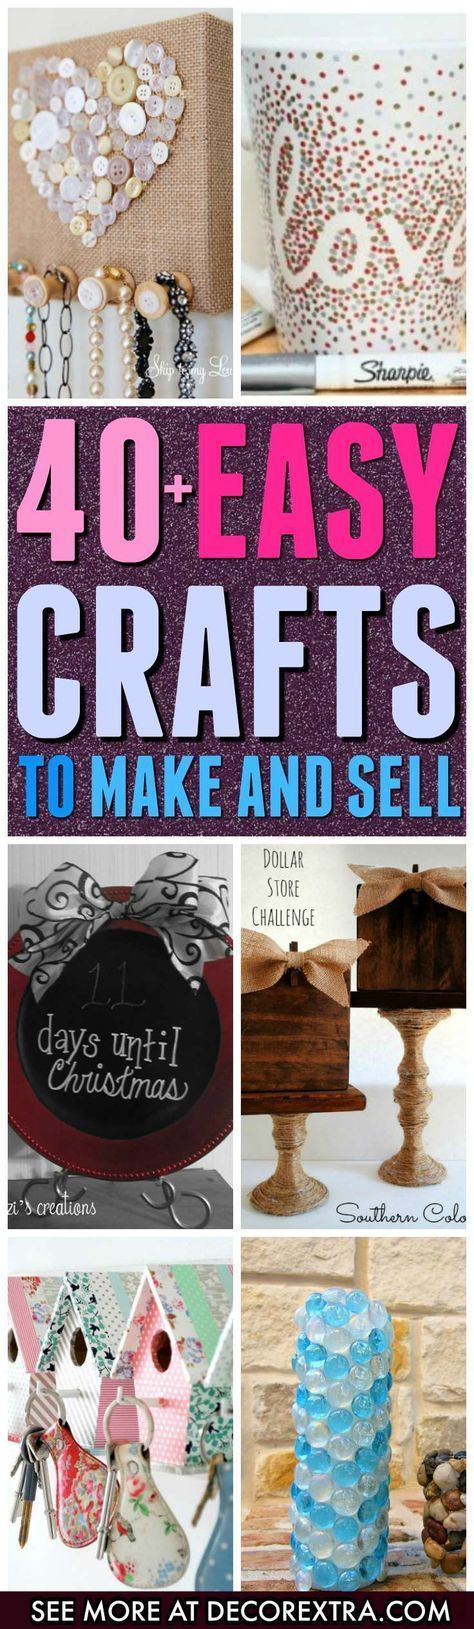 Crafts to Make and Sell. You can make lots of different type of things with cheap items and you can get started selling your crafts on Etsy or other stores, so in this article we present you one collection of 40+ AMAZING Crafts to Make and Sell. For more inspiration, see our popular posts on 20+ DIY Pallet Projects …